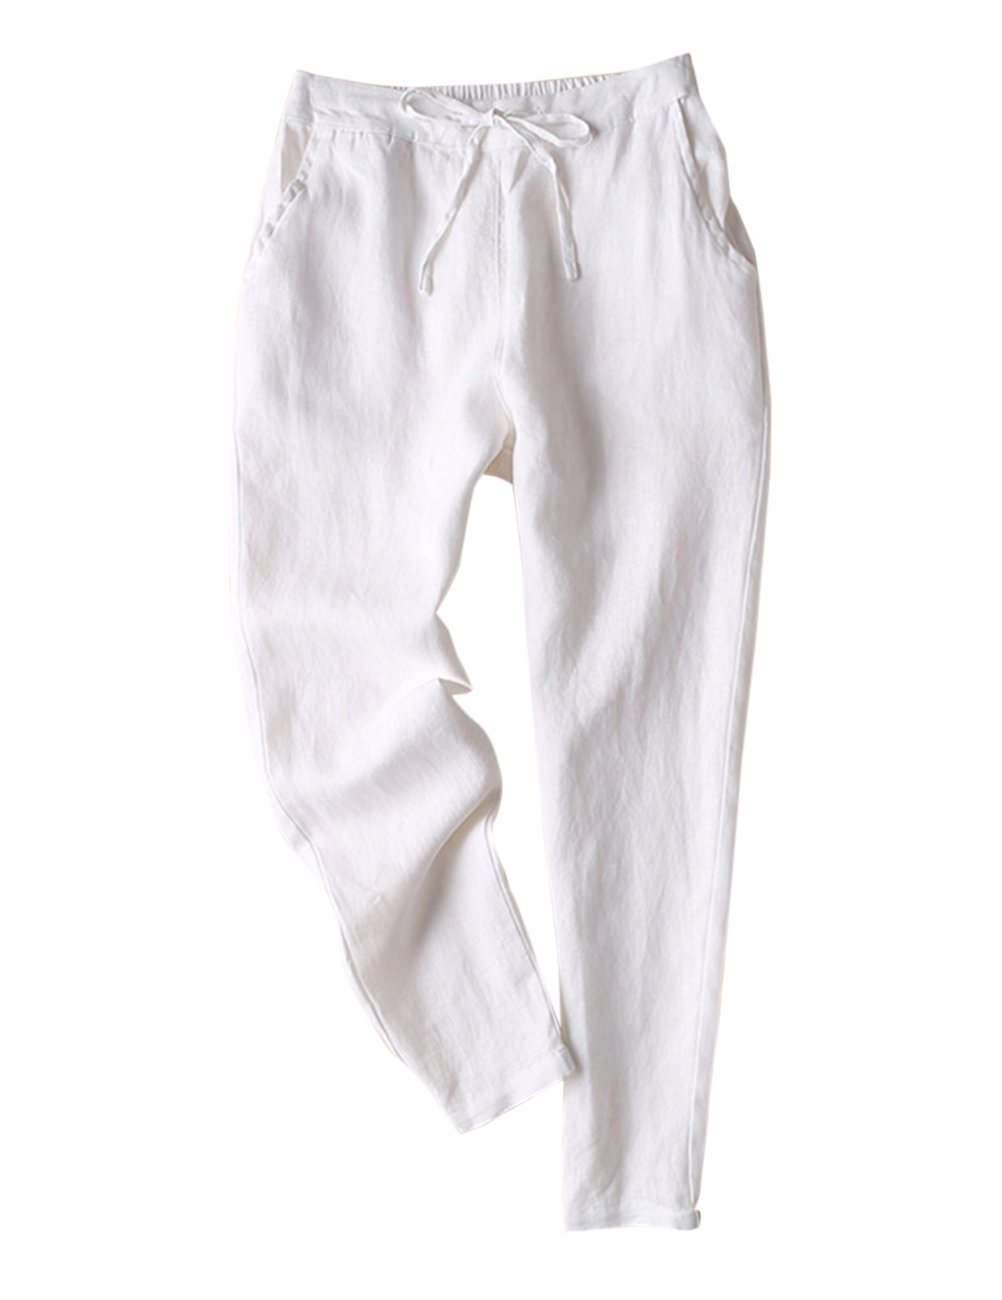 IXIMO Women's Tapered Pants 100% Linen Drawstring Back Elastic Waist Pants Trousers with Pockets White XS